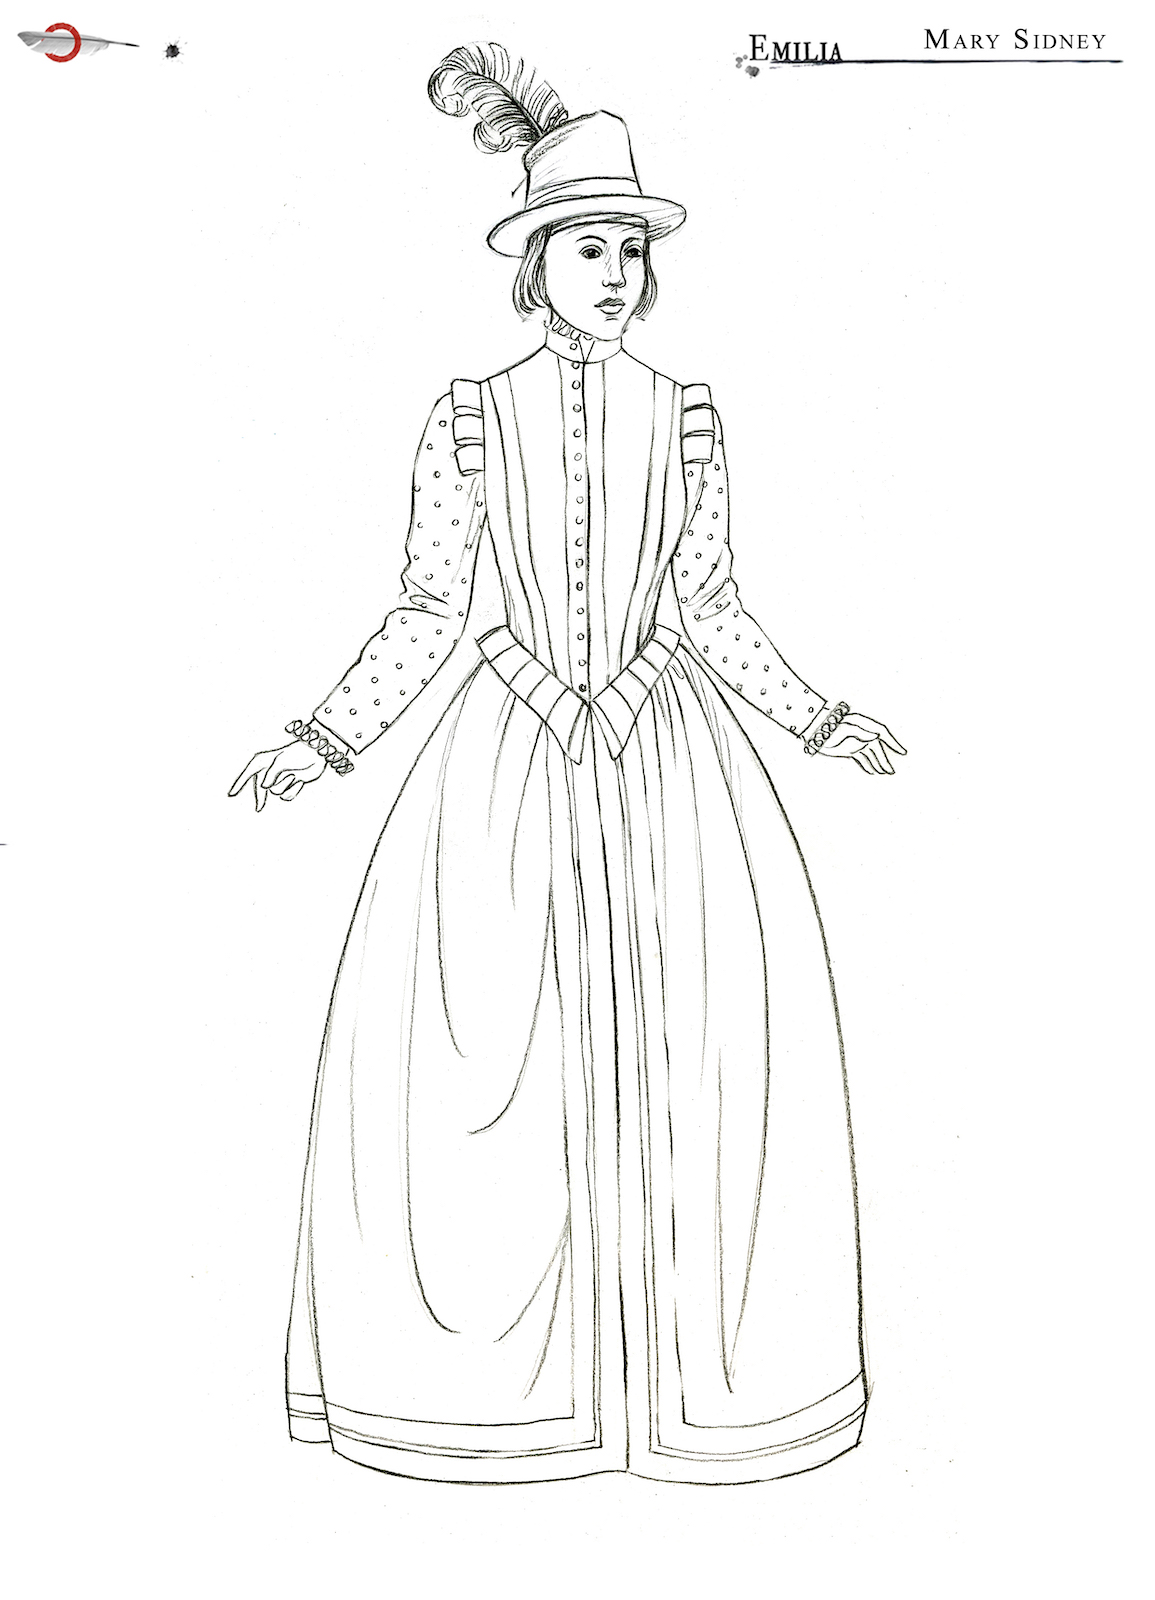 A costume sketch of an Elizabethan dress and a hat with a feather in it